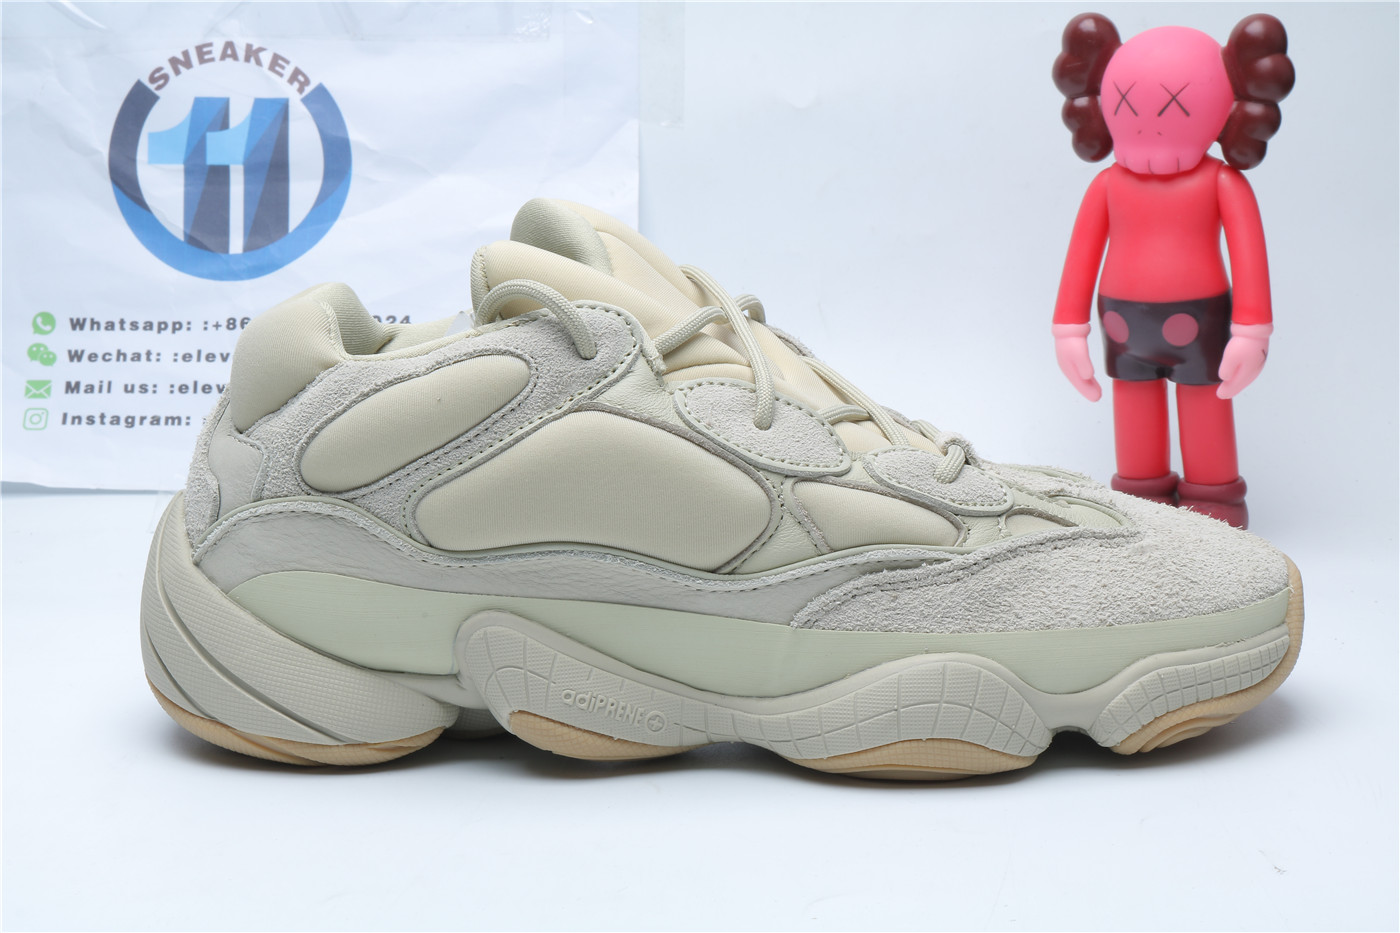 Adidas Yeezy 500 Stone 4839,All Products : Eleven Kicks, Eleven Kicks